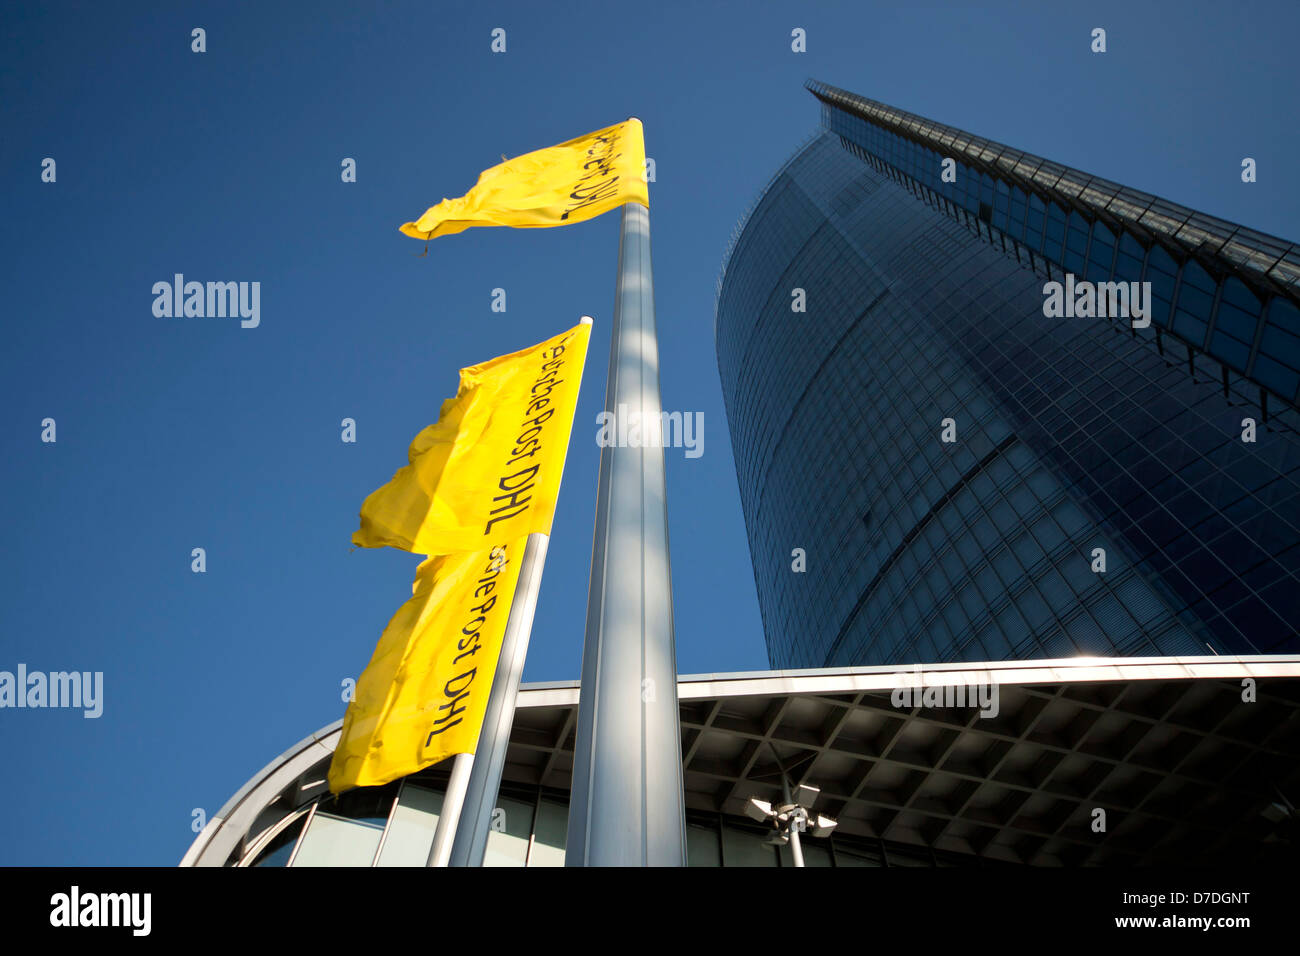 Post Tower, the headquarters of the logistic company Deutsche Post DHL in Bonn, North Rhine-Westphalia, Germany, Stock Photo